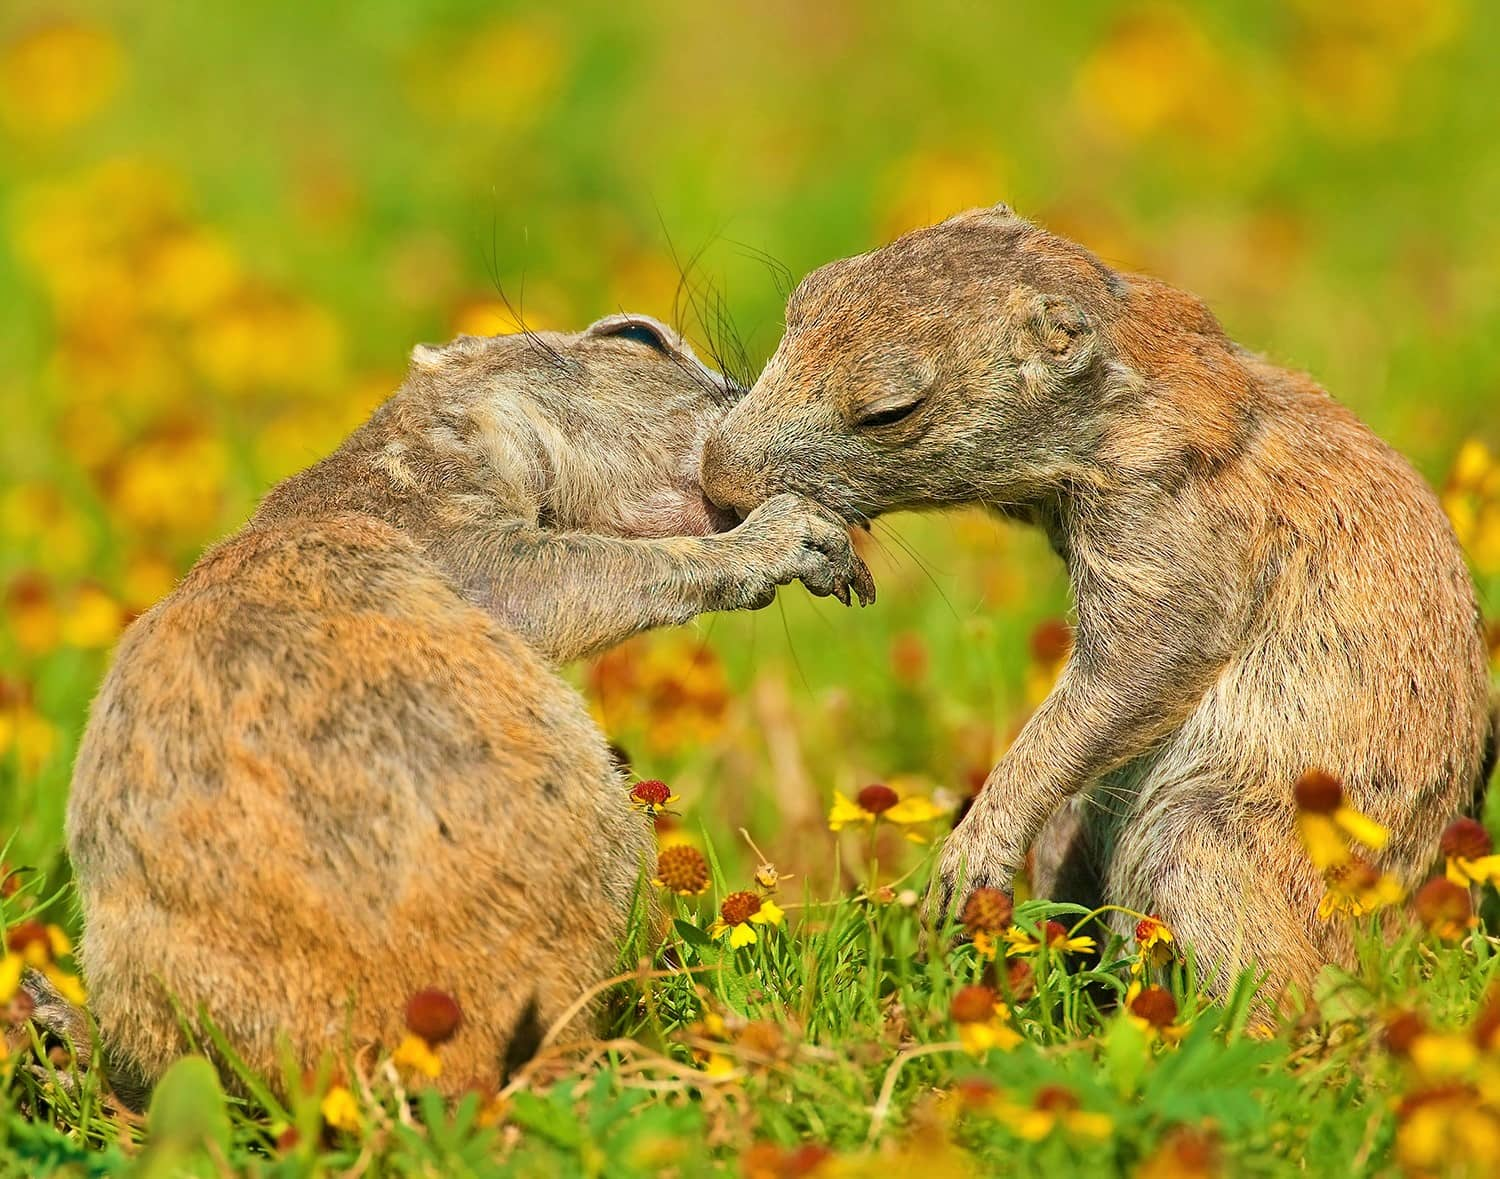 When, Why Do Prairie Dogs Kiss Each Other?